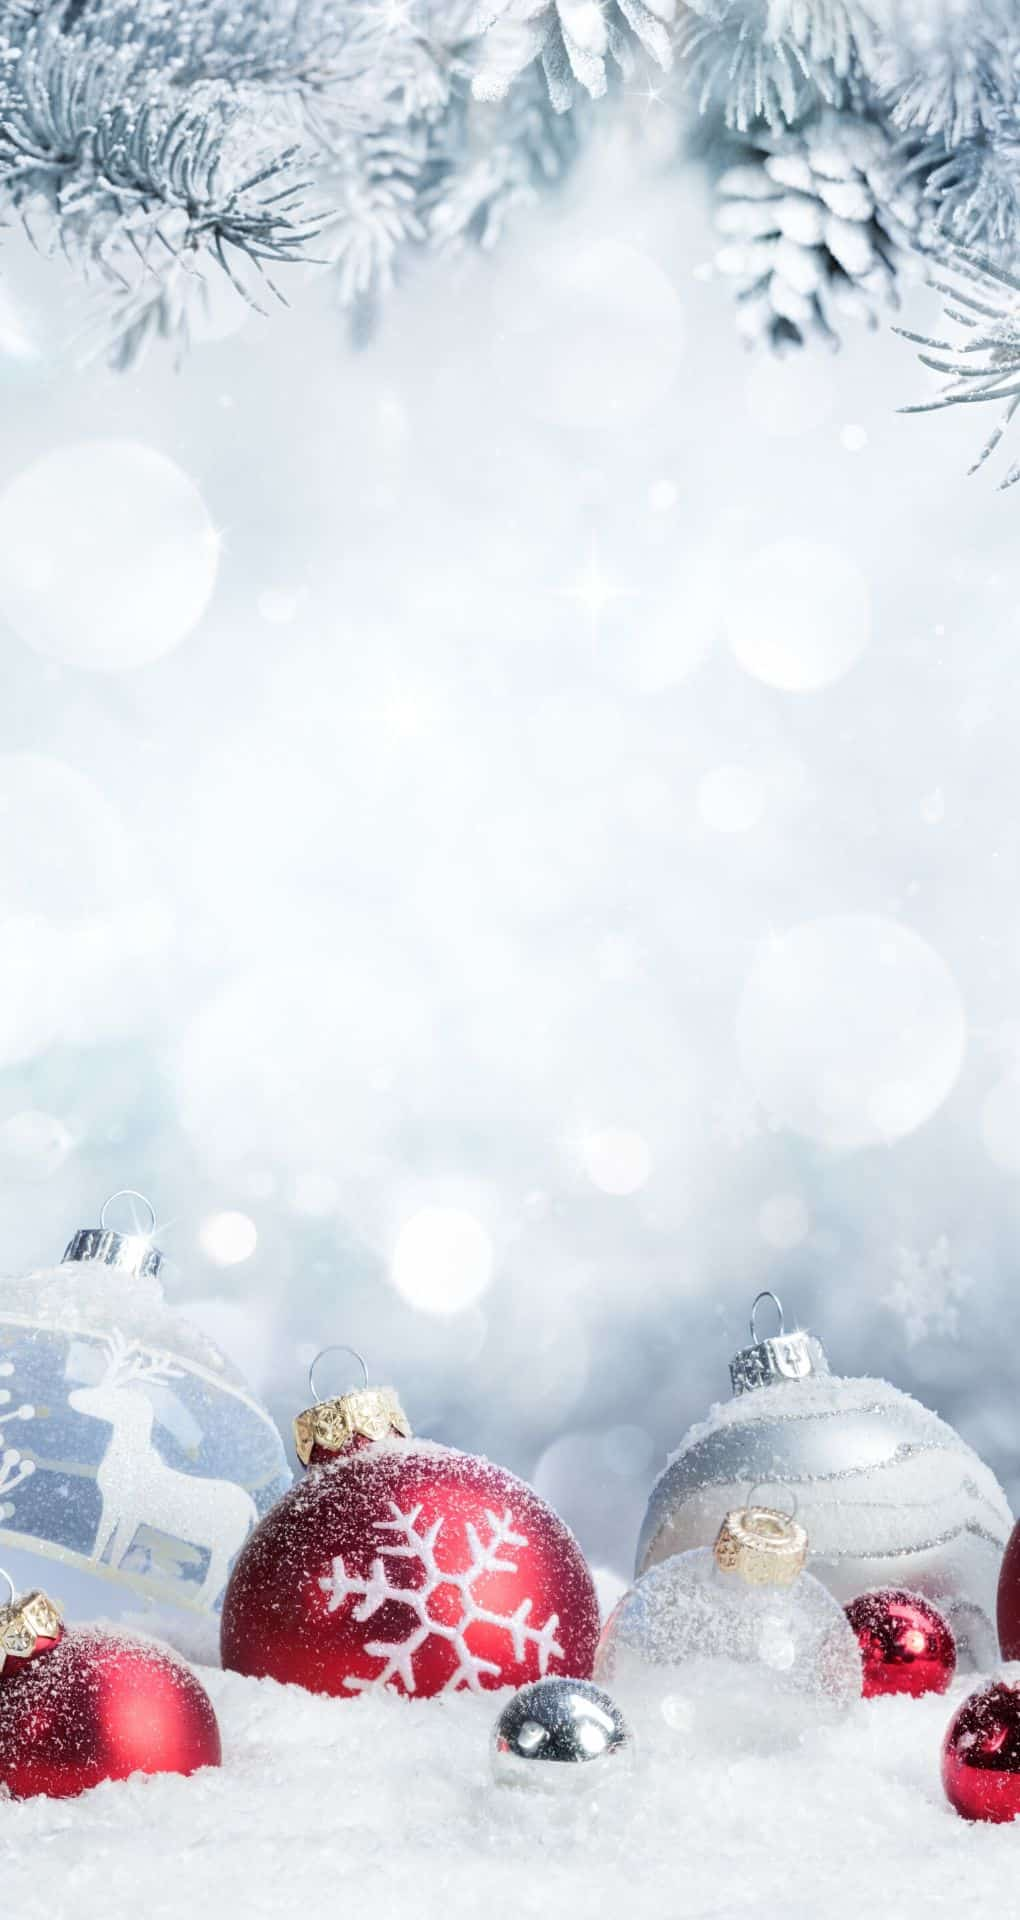 Christmas Wallpaper For Iphone Free Iphone Wallpapers